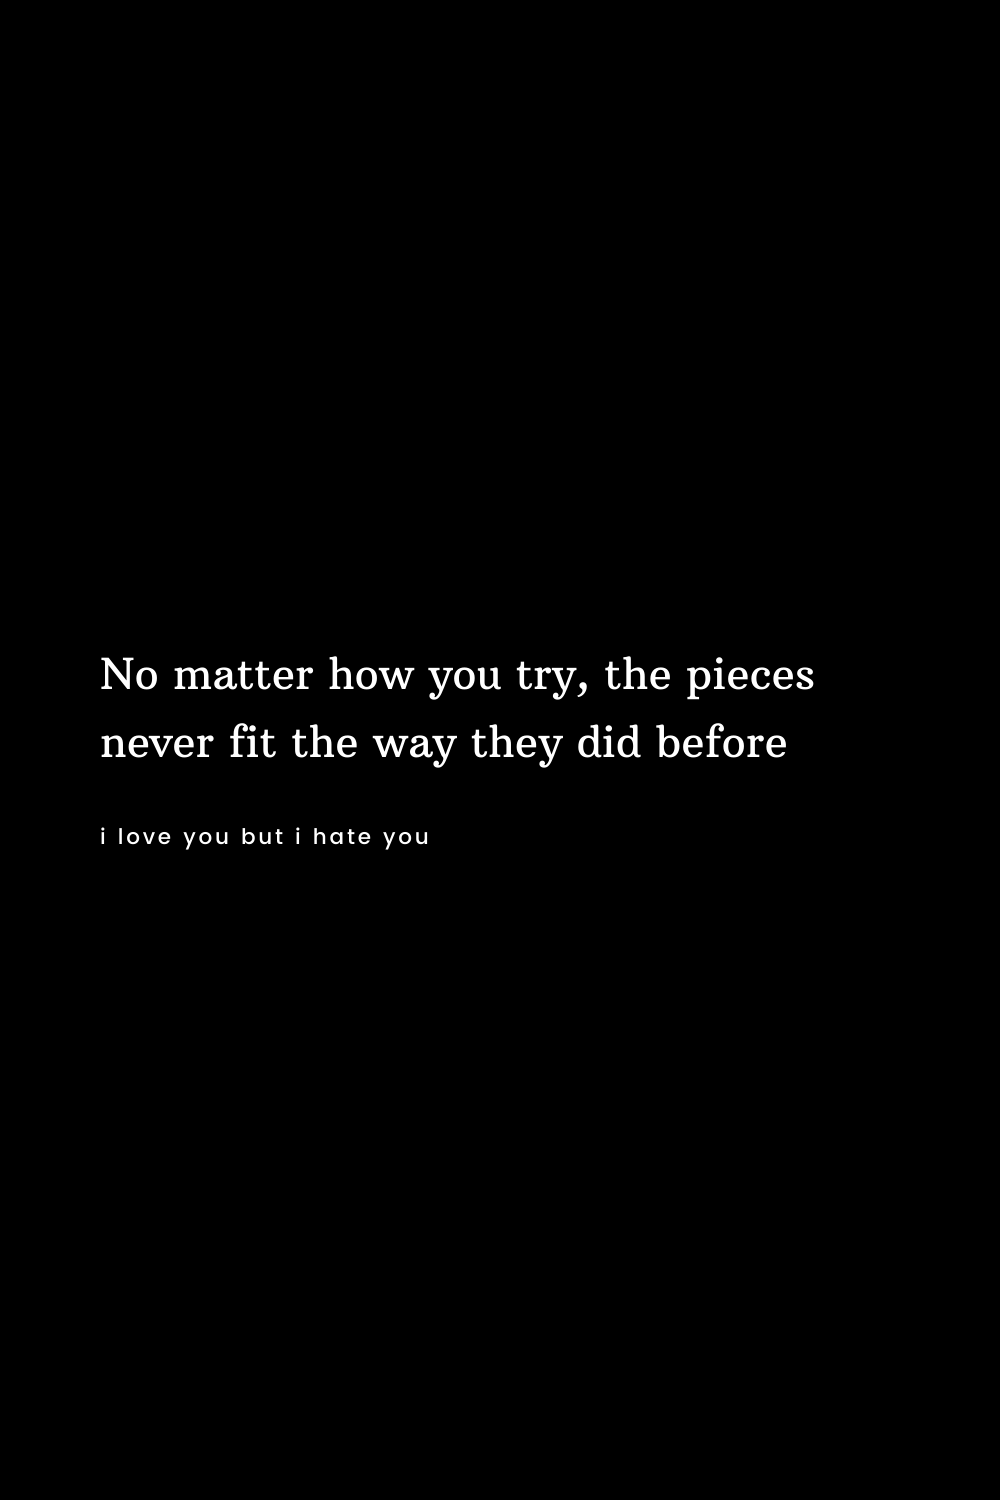 No matter how you try, the pieces never fit the way they did before.